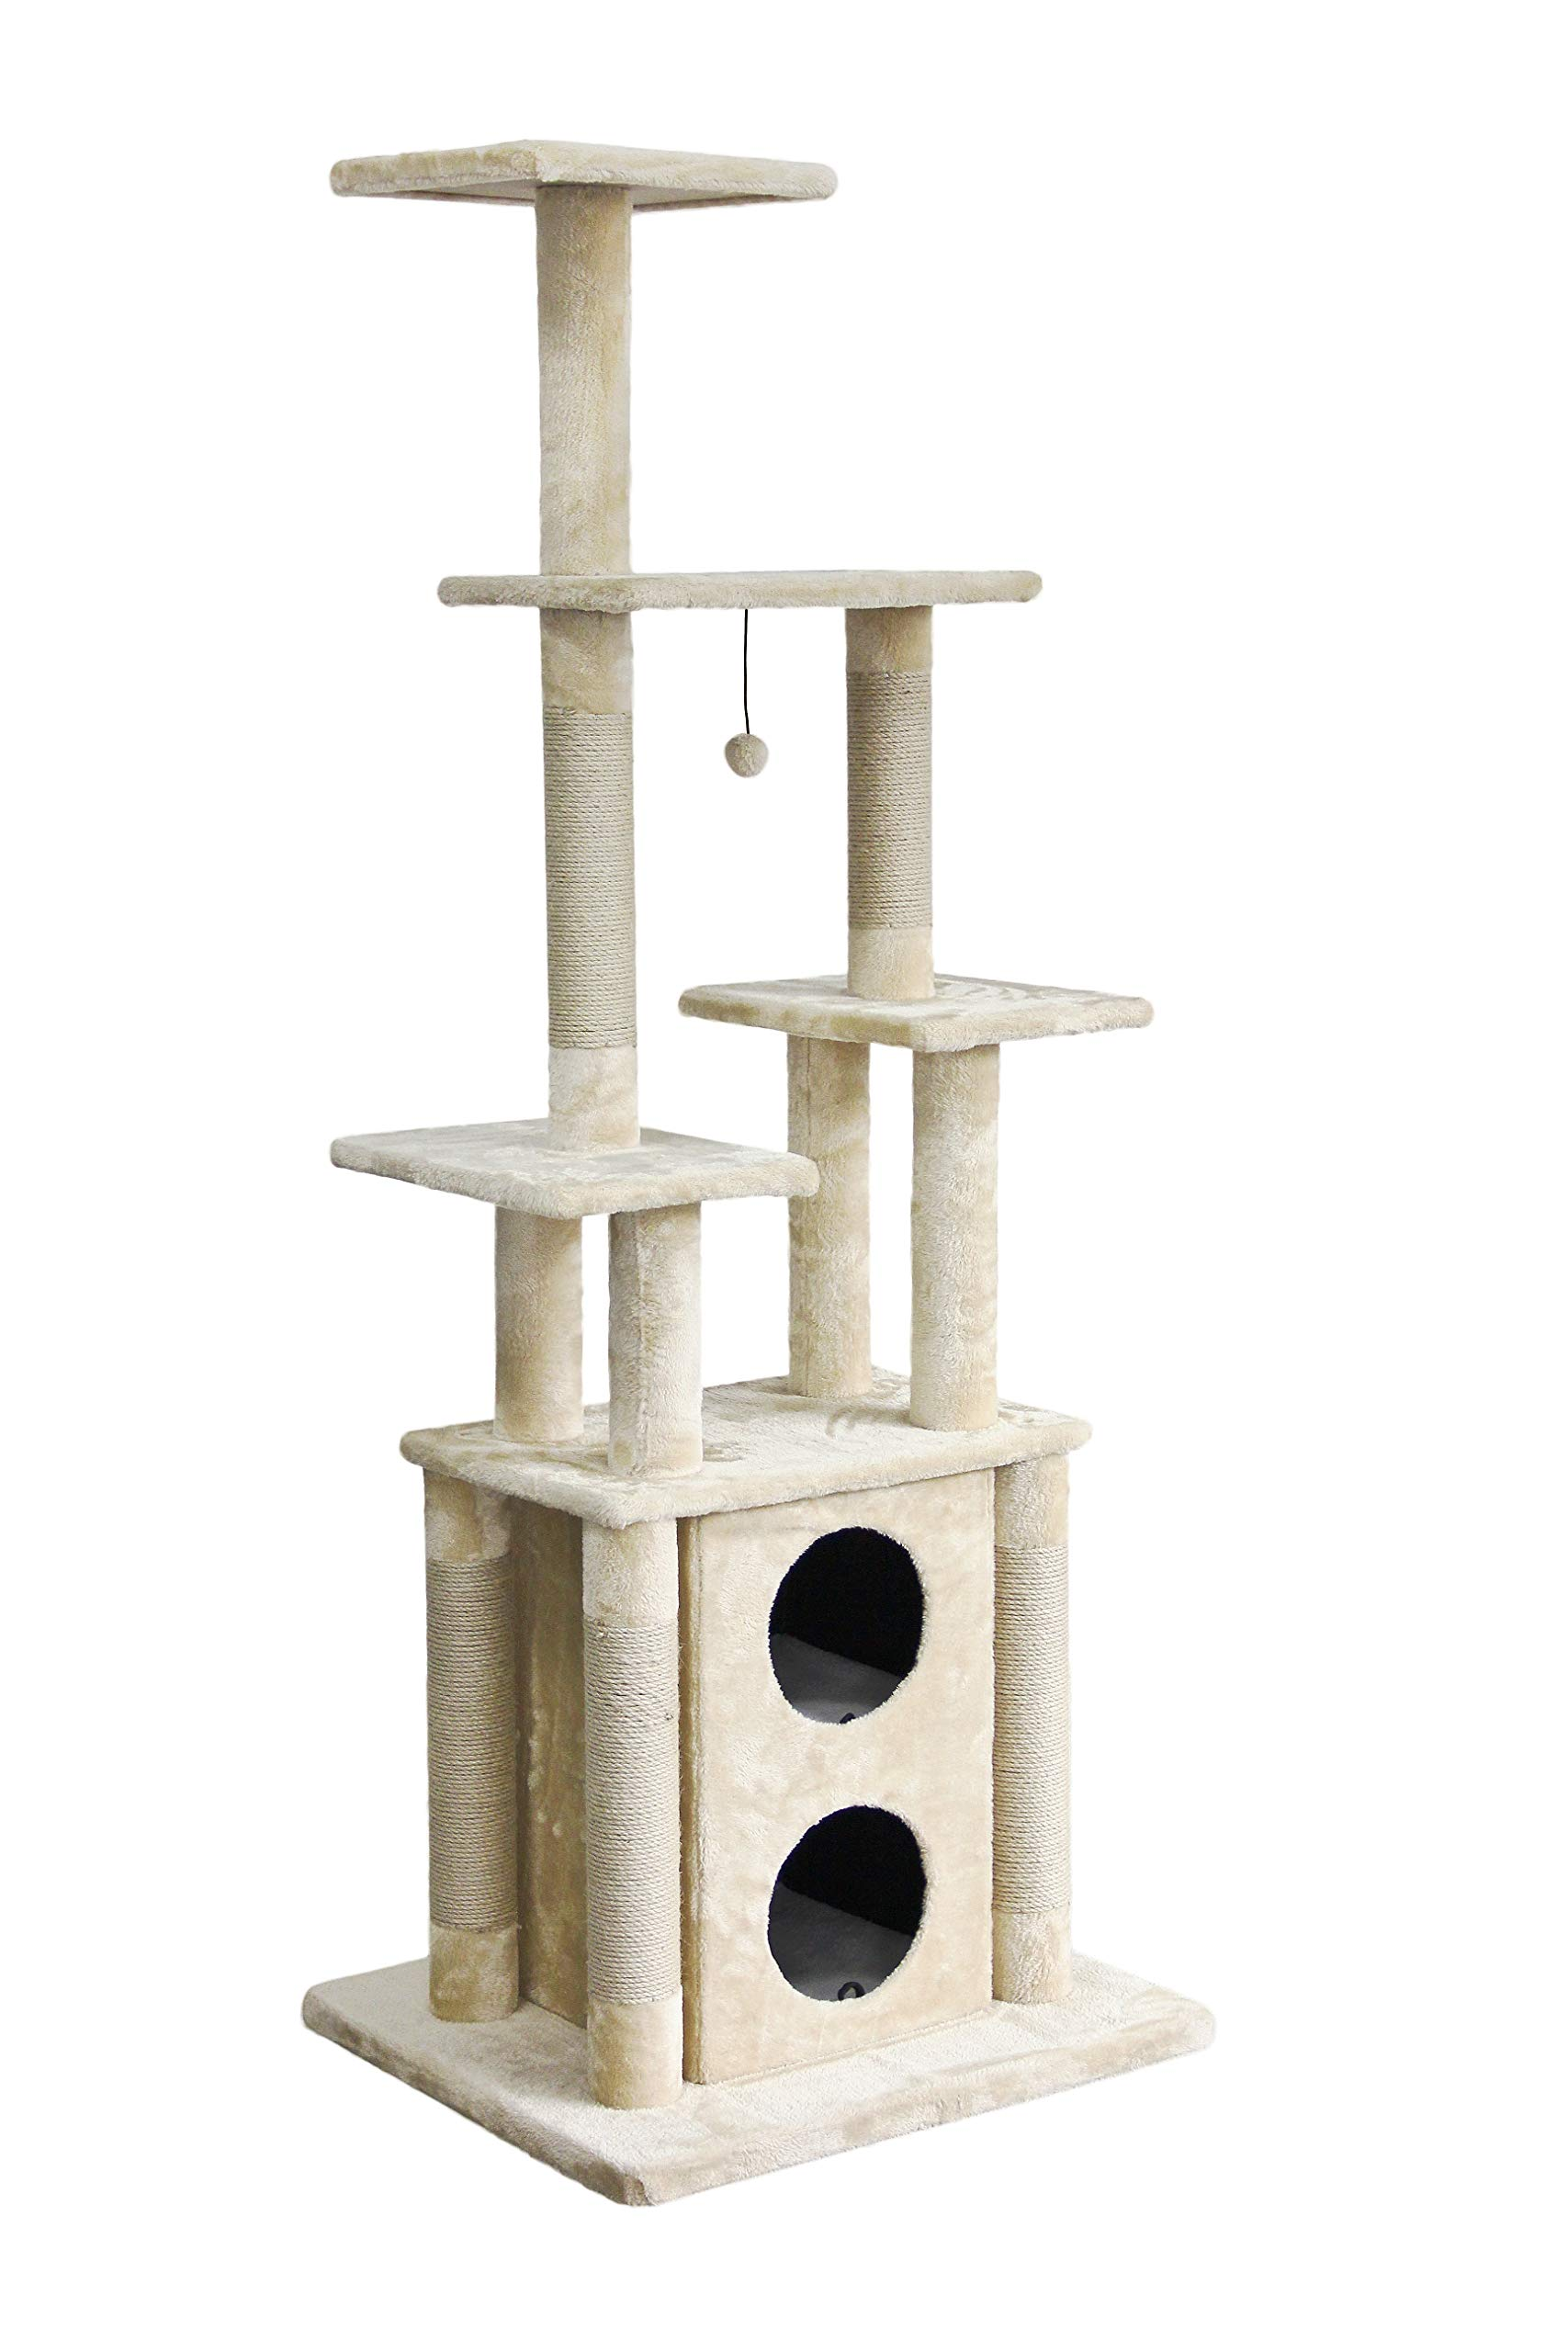 AmazonBasics Cat Tree Tower with Two Story Condo And Scratching Post - 29 x 24 x 72 Inches, Beige by AmazonBasics